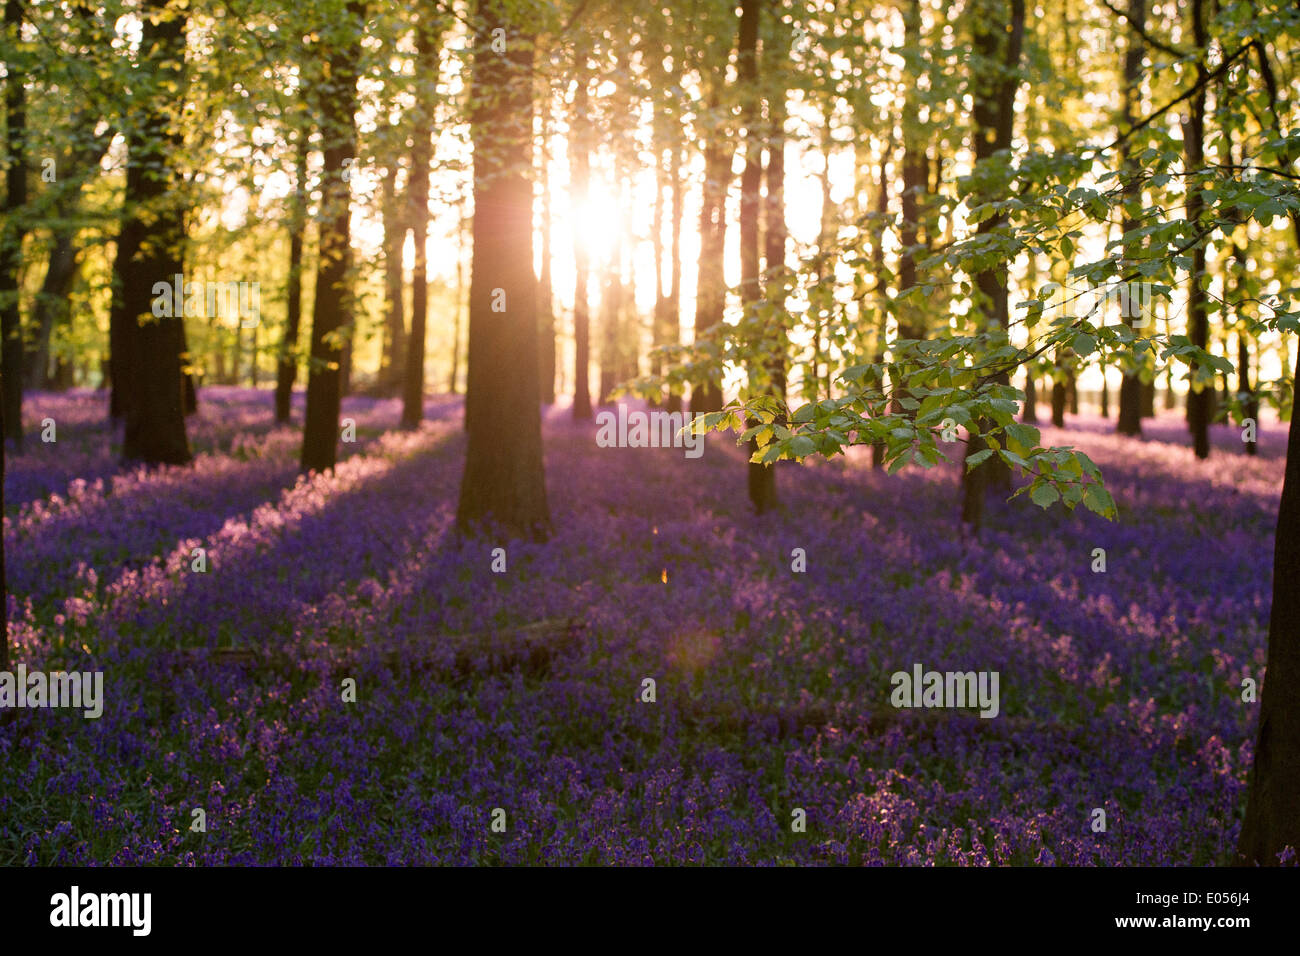 Bluebells at sunset in Dockey Wood on the Ashridge Estate in the Home Counties, UK - Stock Image